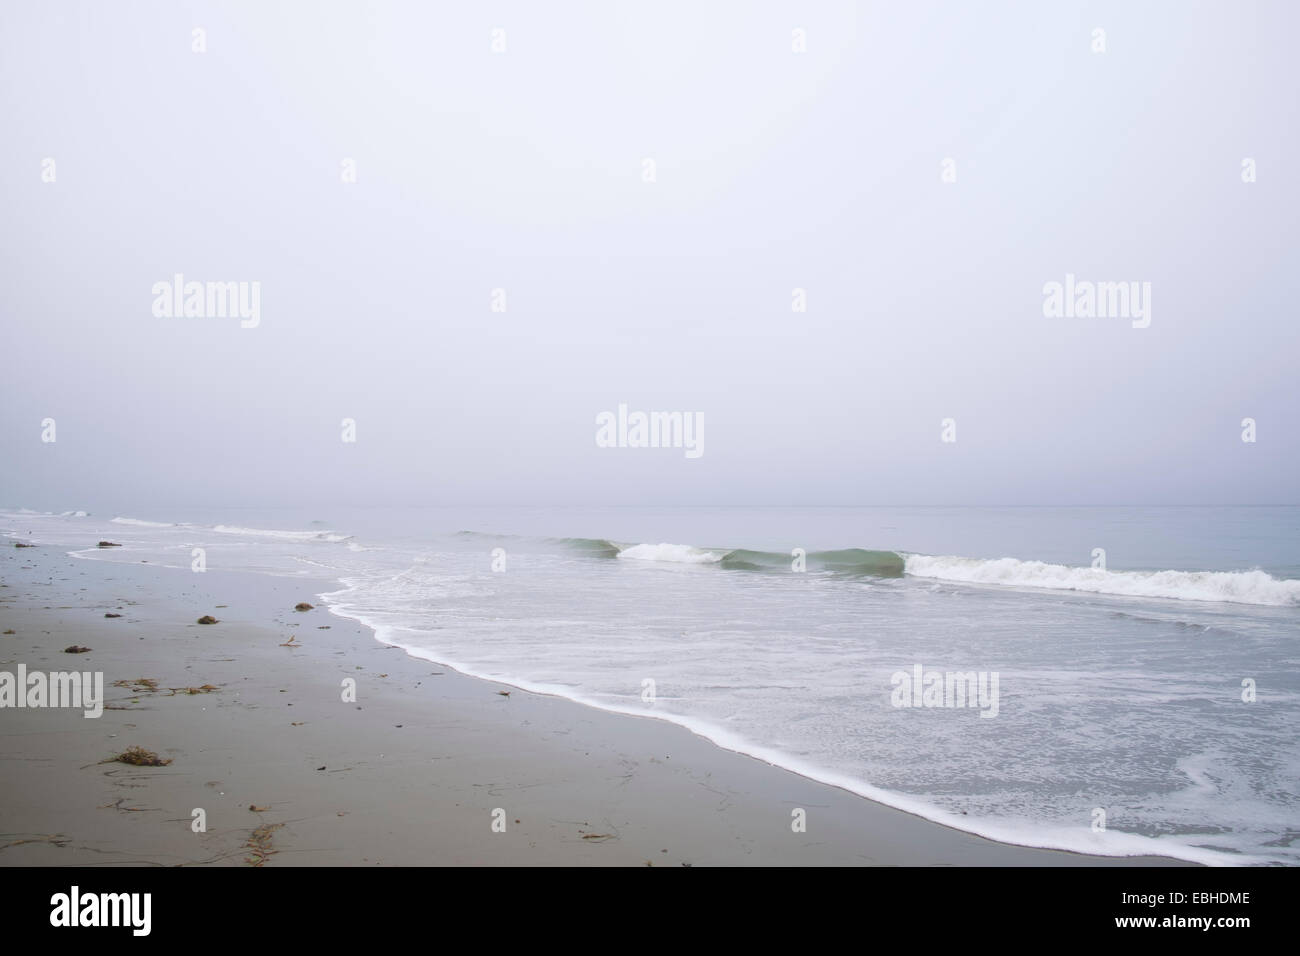 Waves lapping on sandy beach - Stock Image